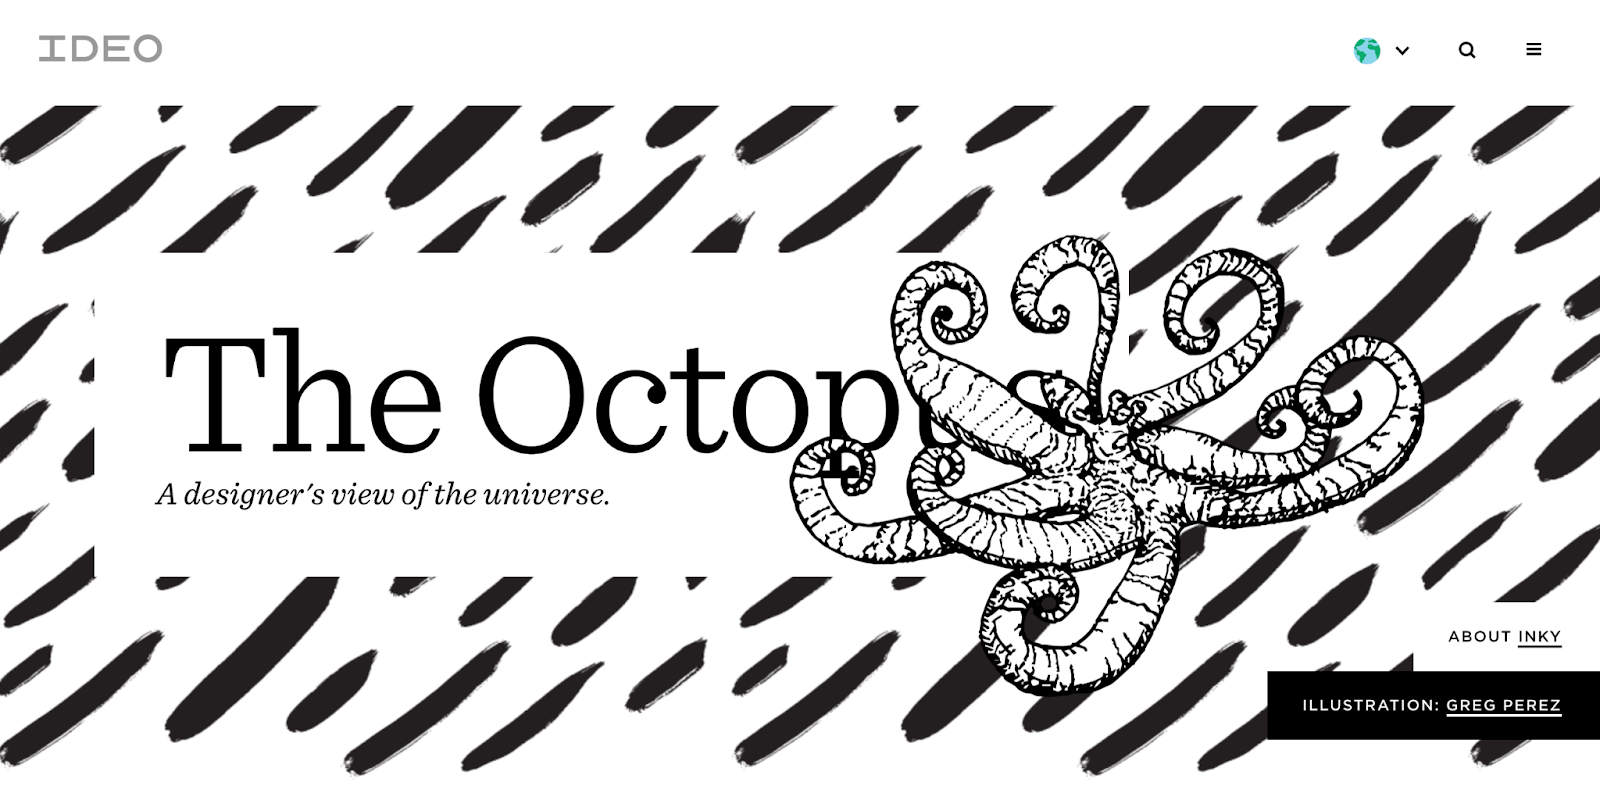 The Octopus best website design award winner 2019